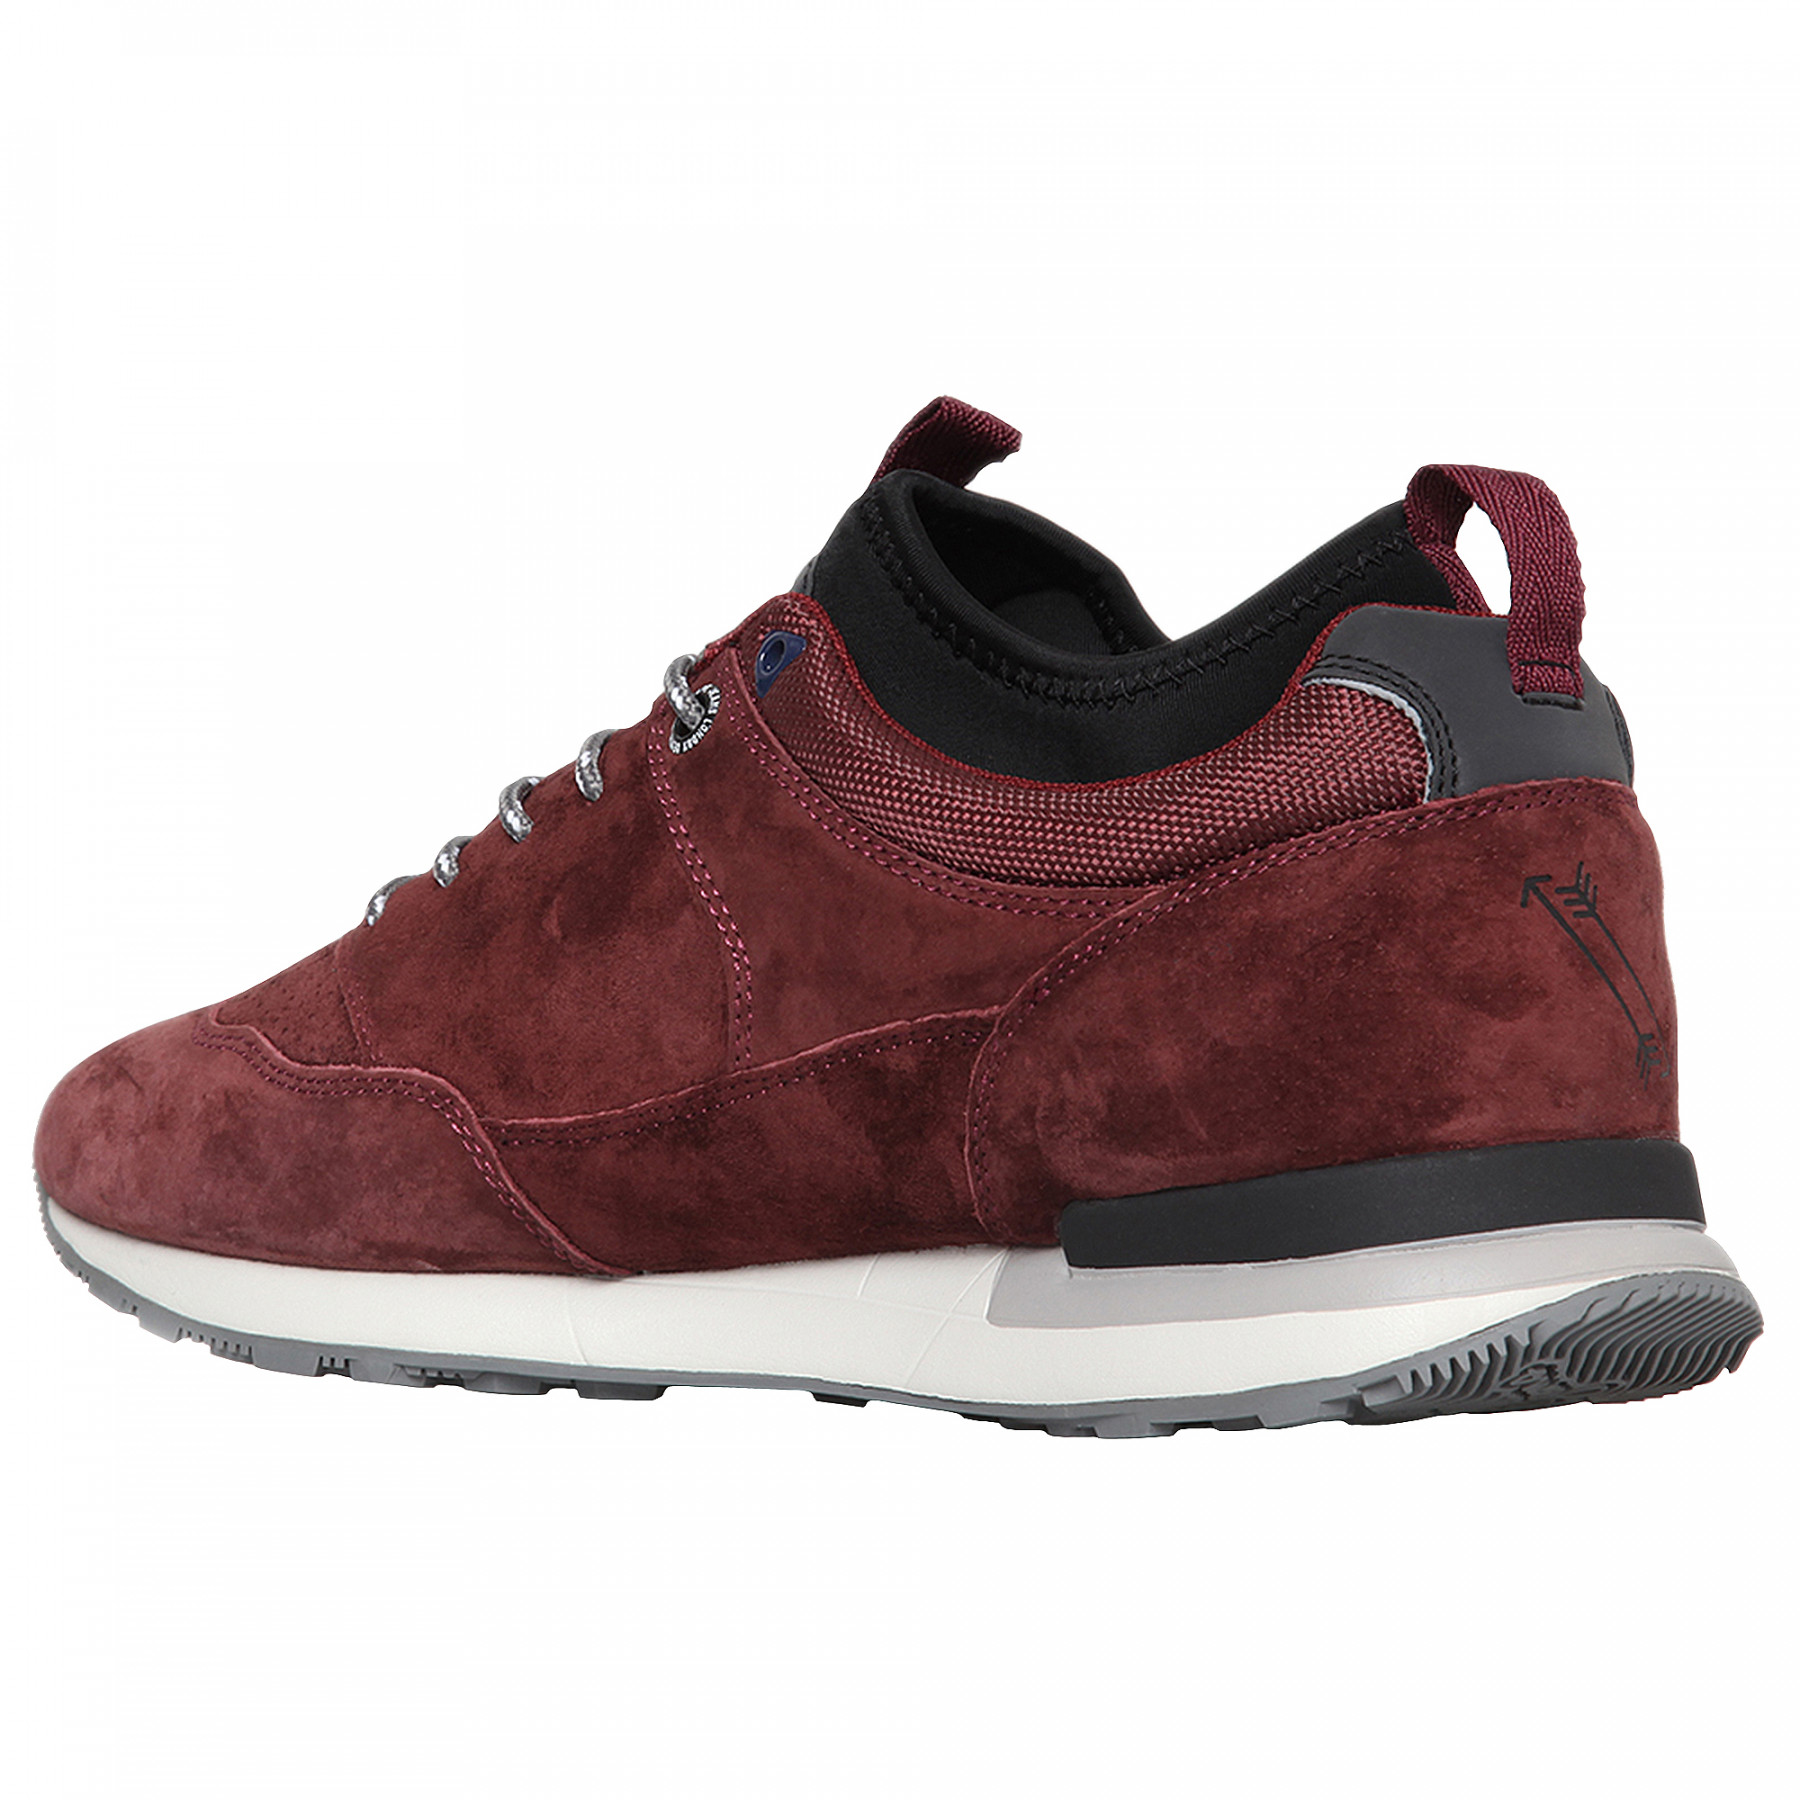 05357c2e9f6 Boston Treck Chaussure Homme PEPE JEANS ROUGE pas cher - Baskets ...